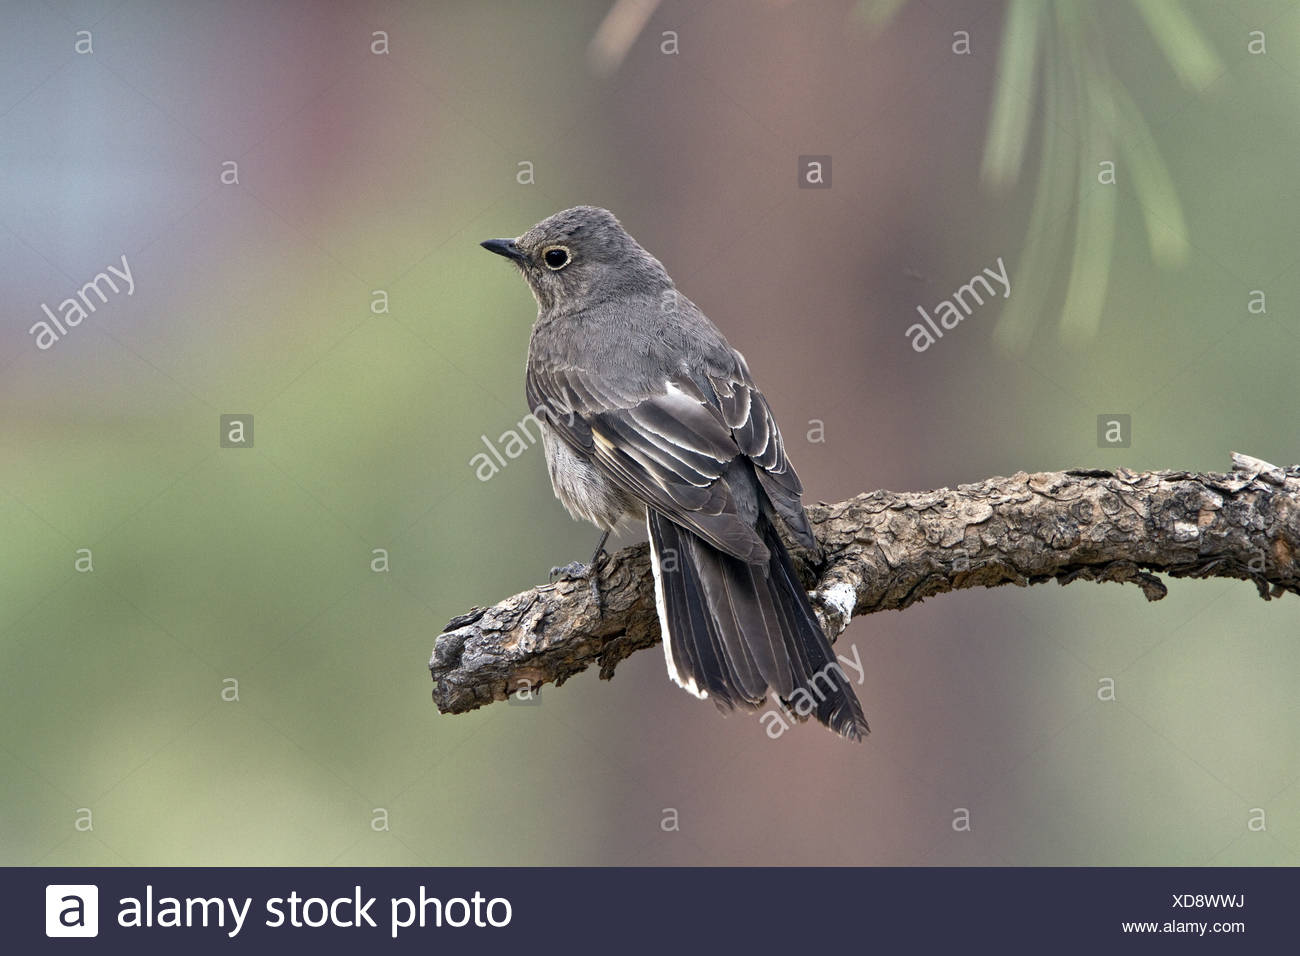 Adult Townsend's Solitaire - Utah America - Stock Image